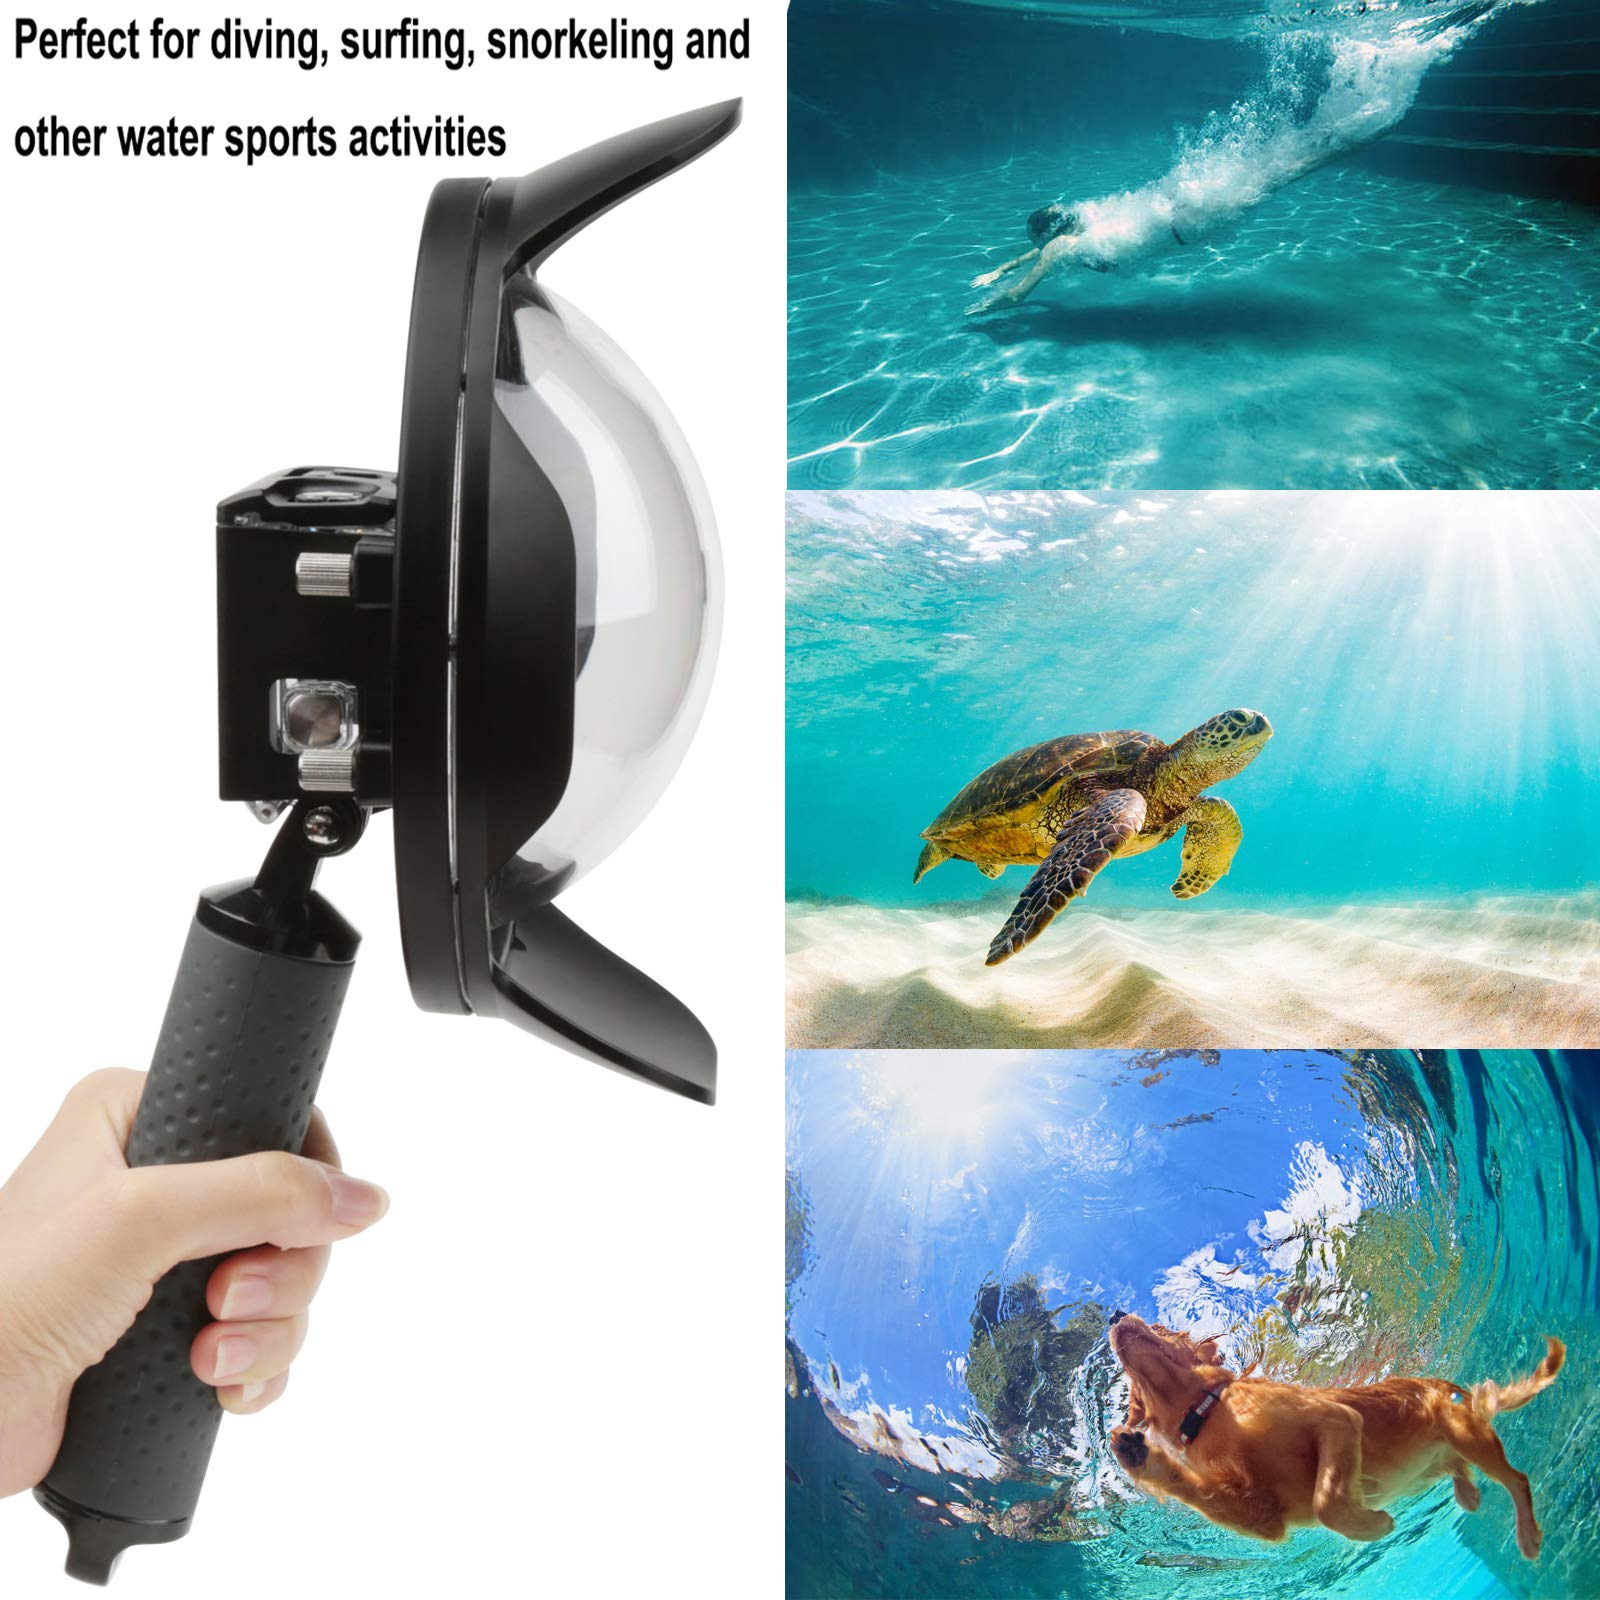 Gurmoir Shoot 6'' Dome Lens Hood Dome Port for Gopro Hero 7 Black/Hero 6/Hero 5/Hero (2018) Action Cameras Snorkeling Underwater Diving Dome with Waterproof Housing Case with Soft Rubber Floating Grip by Gurmoir (Image #3)